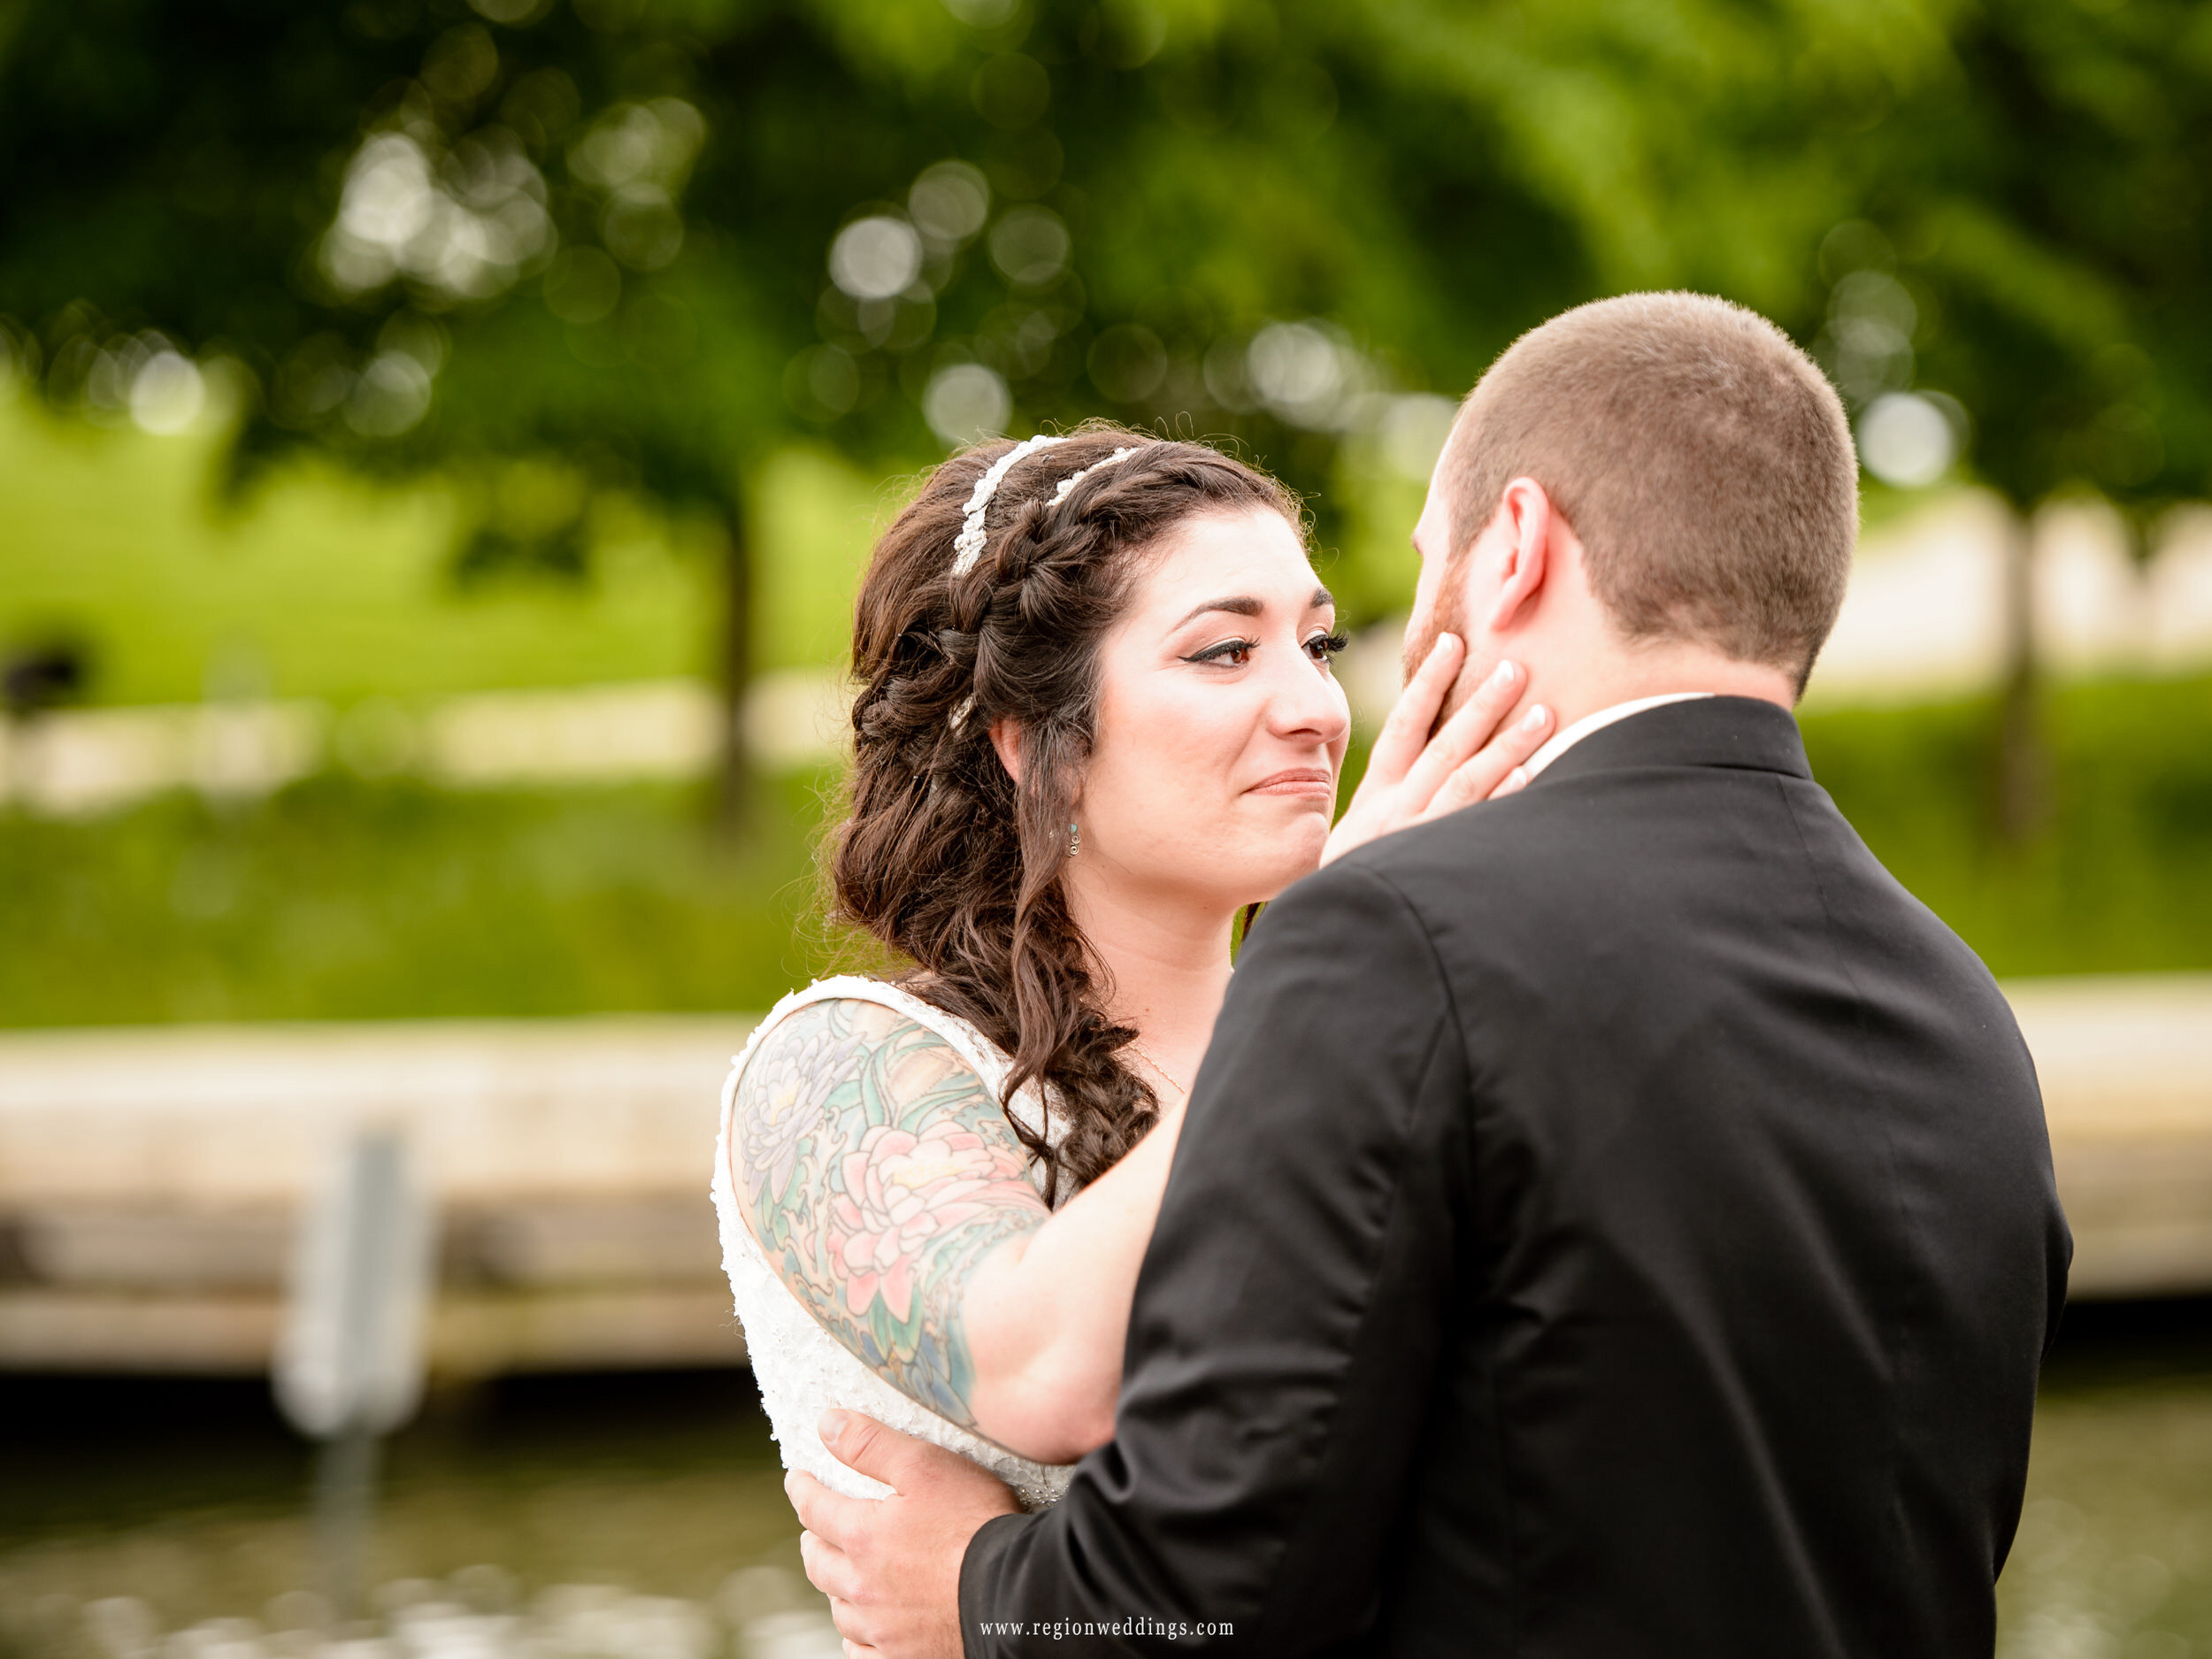 Bride and groom come together during an emotional moment.